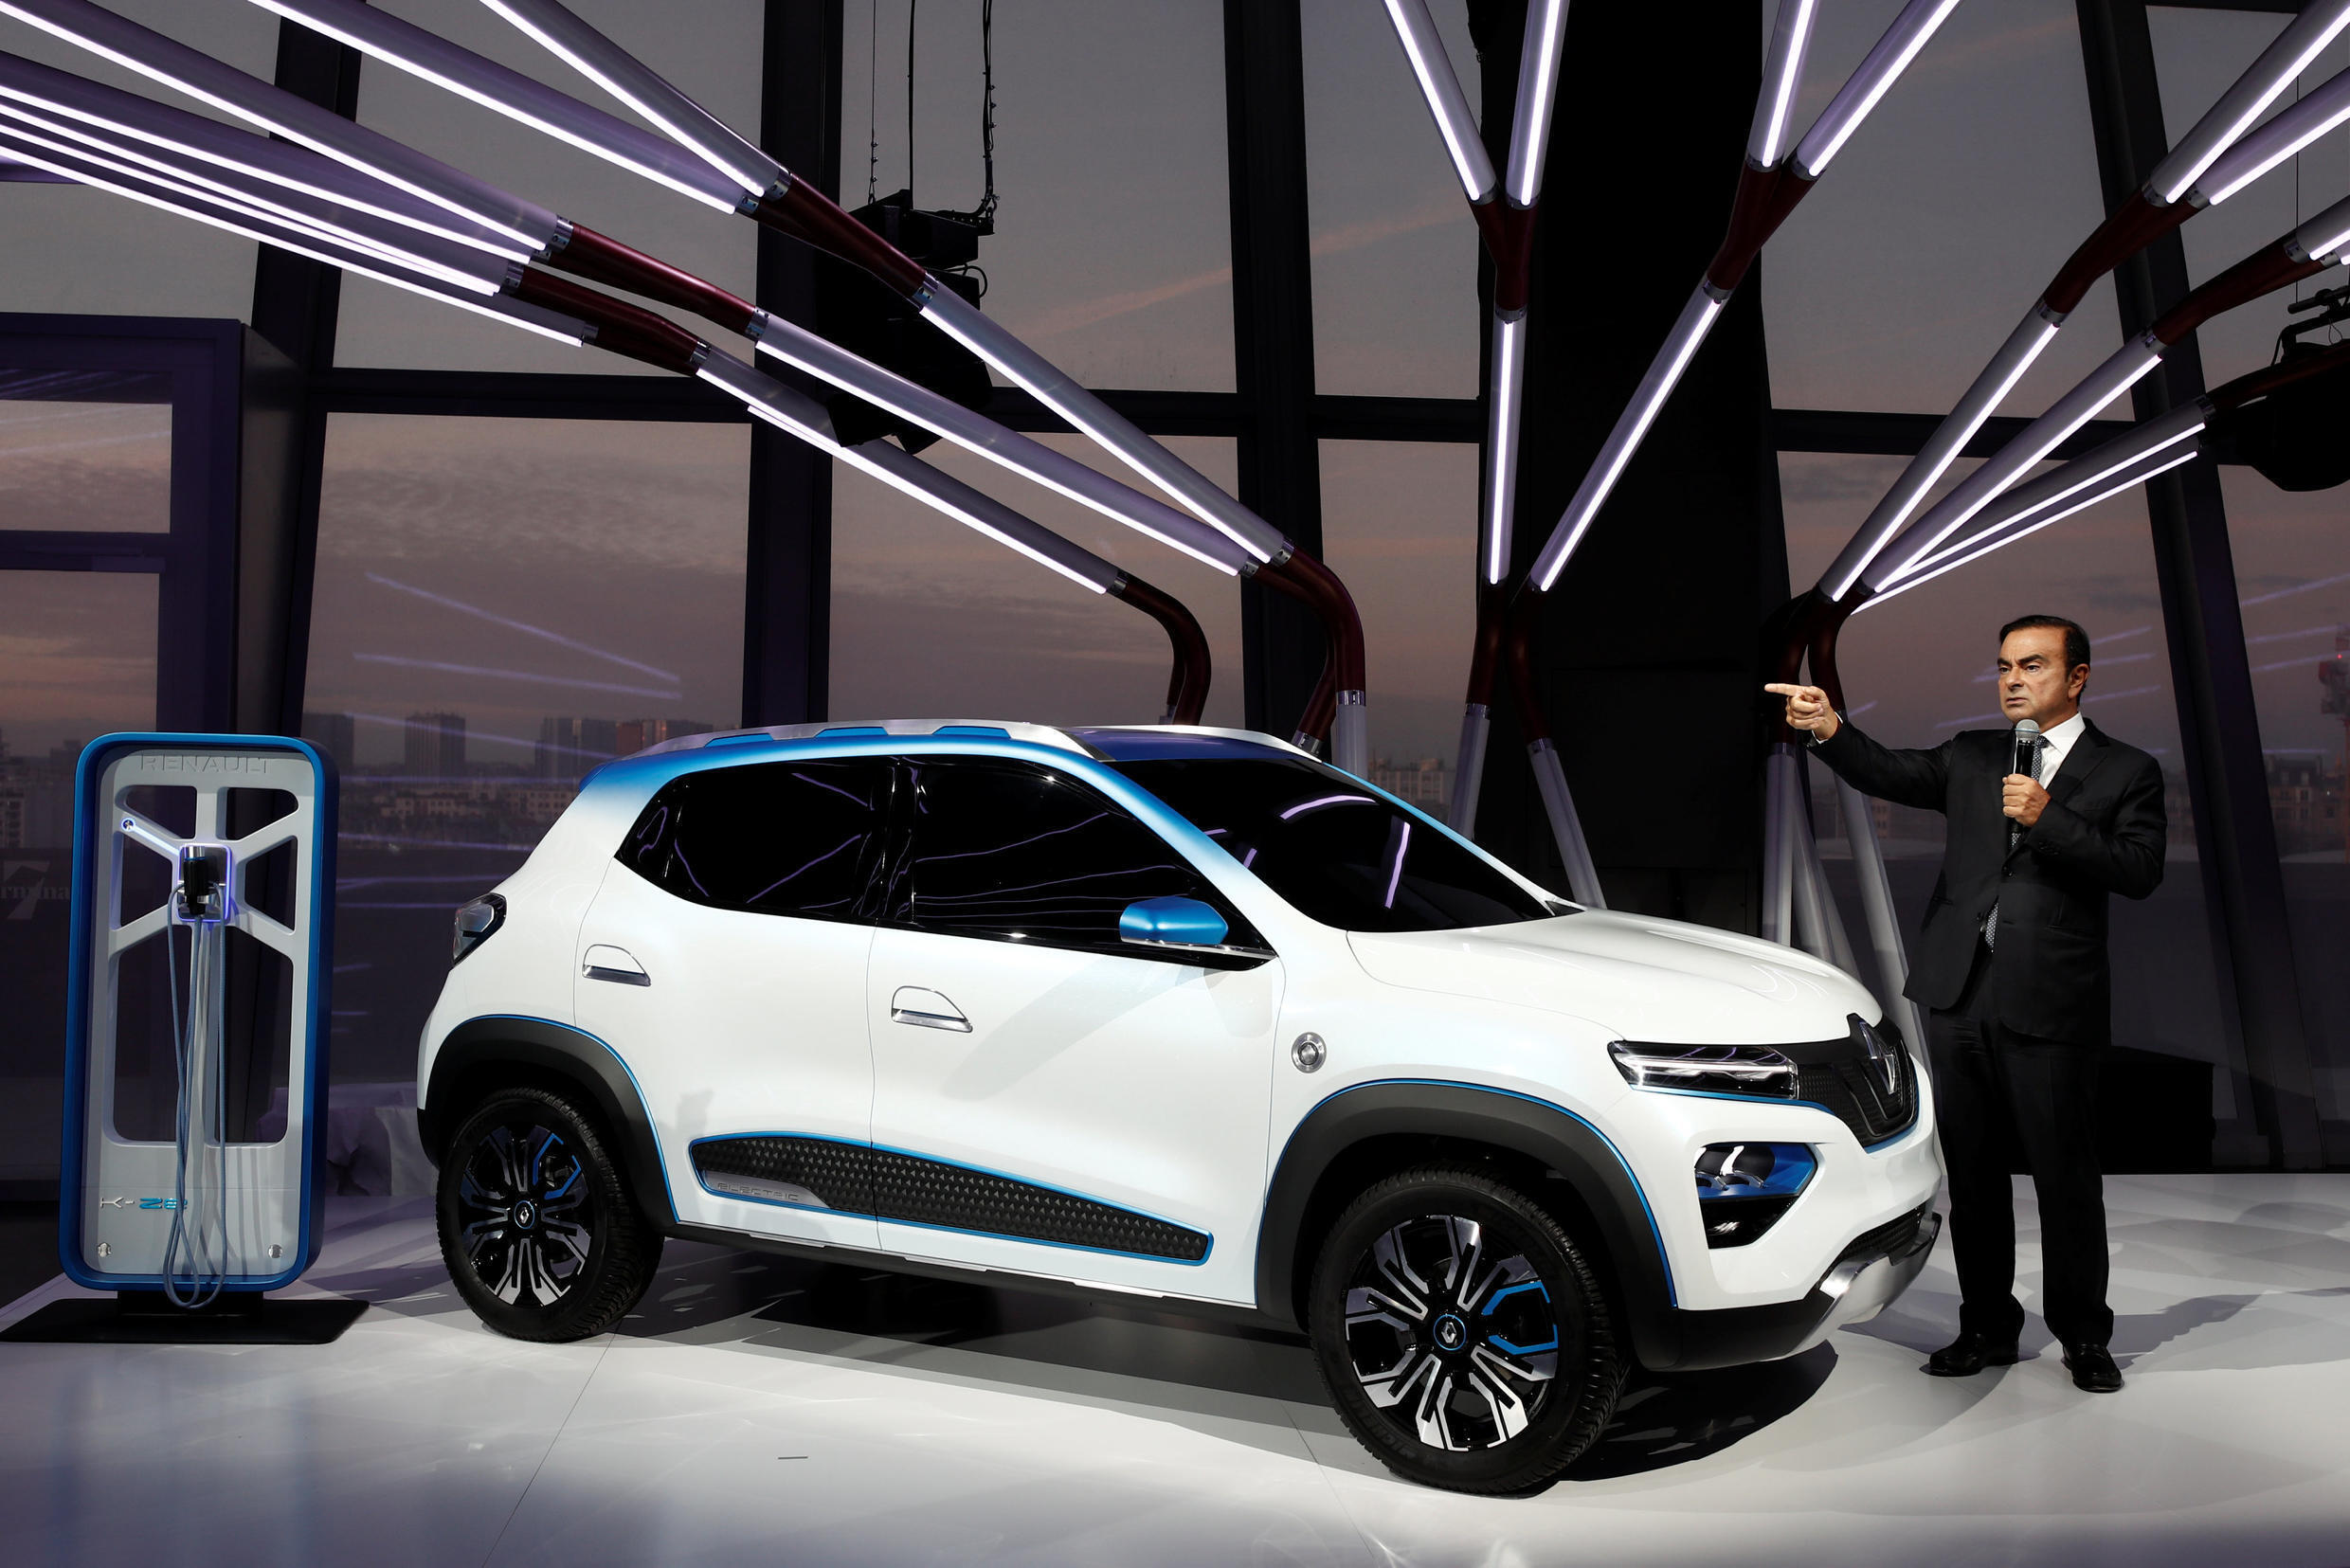 Carlos Ghosn, Chairman and CEO of the Renault-Nissan Alliance, speaks next to an electric show car called Renault K-ZE at the Paris Motor Show on 1 October 2018.